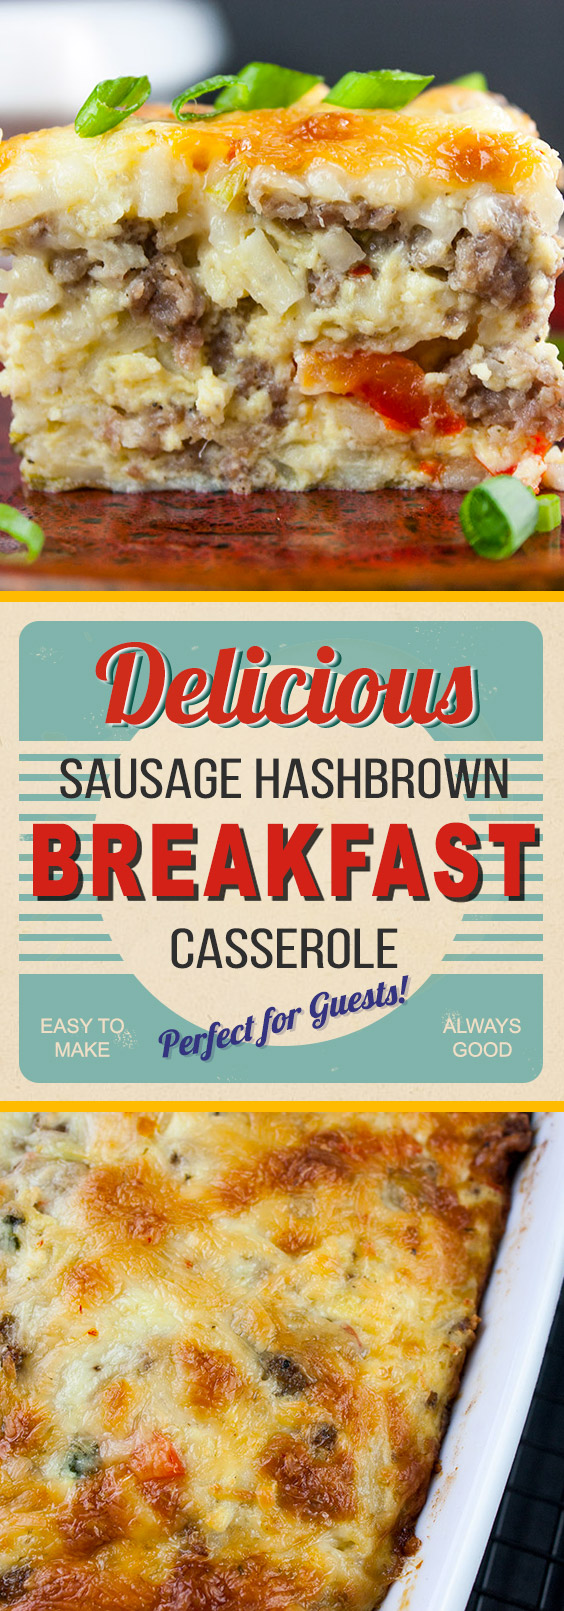 Sausage Hashbrown Breakfast Casserole Recipe - All your breakfast favorites baked in one pan! Can be made the night before and is perfect for a crowd.  #breakfast #casserole #sausage